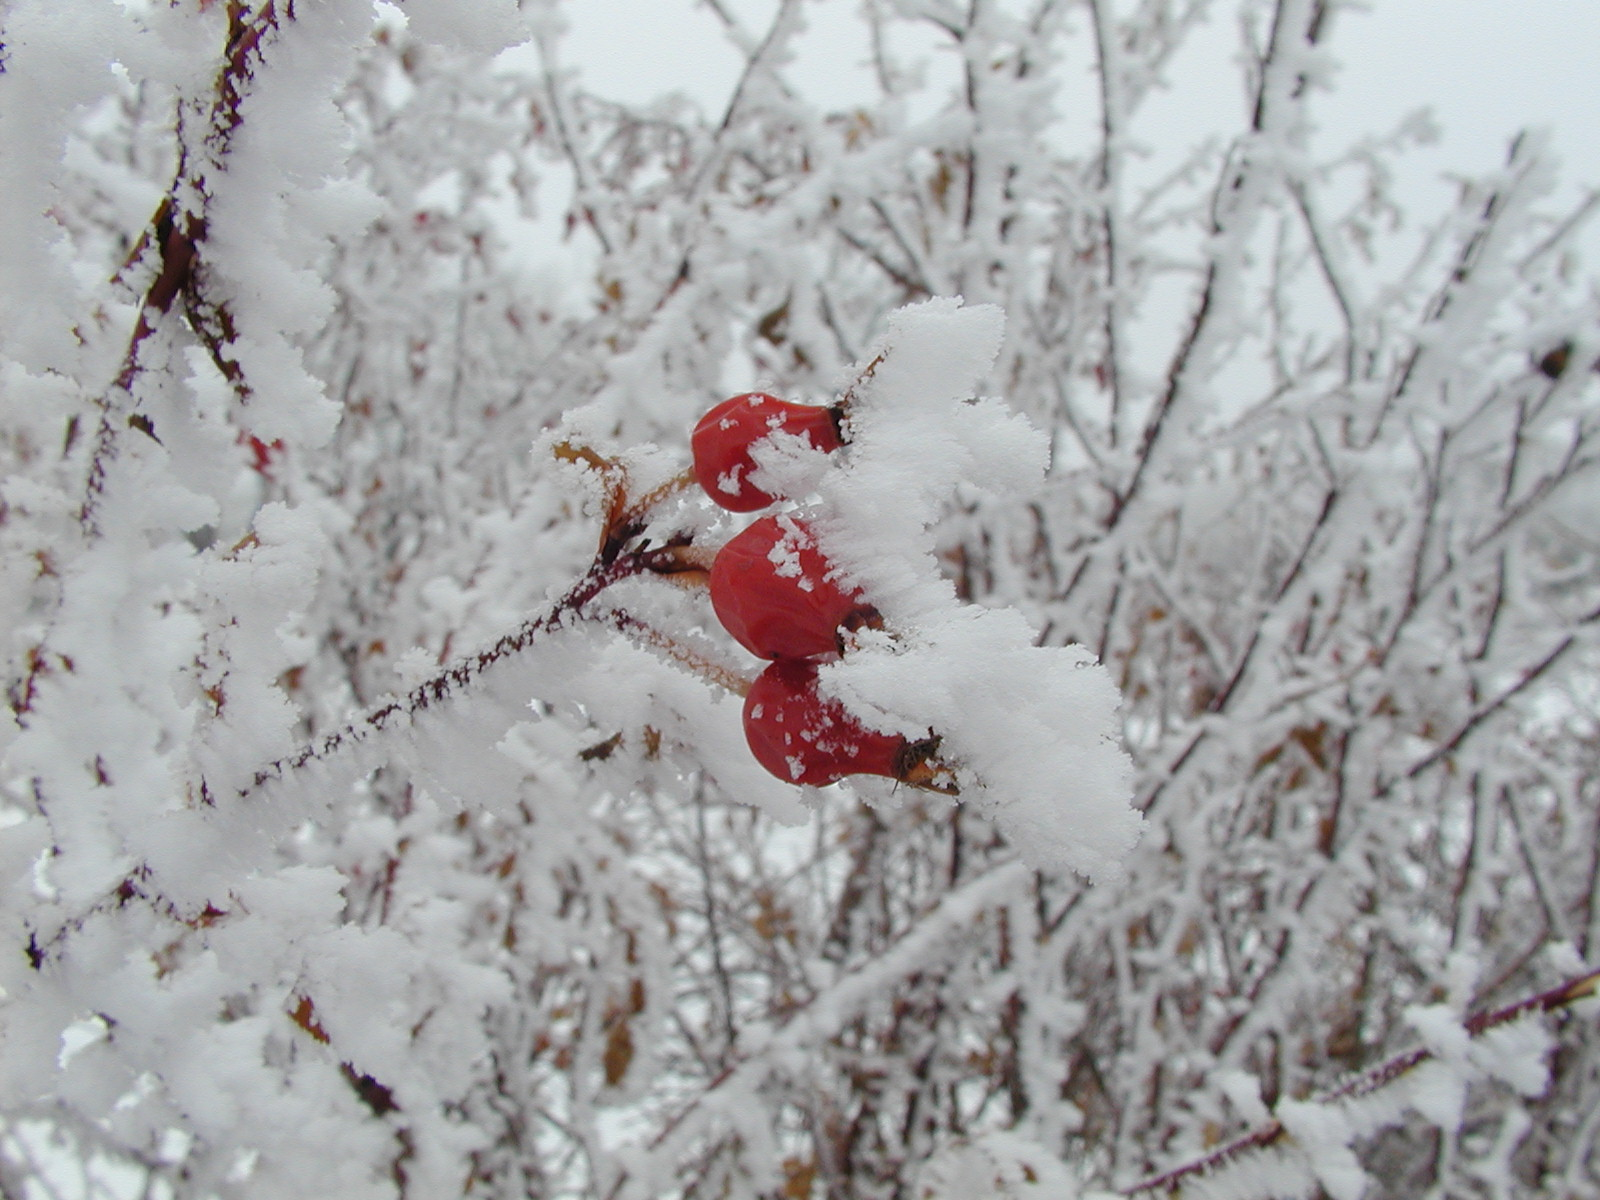 Rose hips in snow.